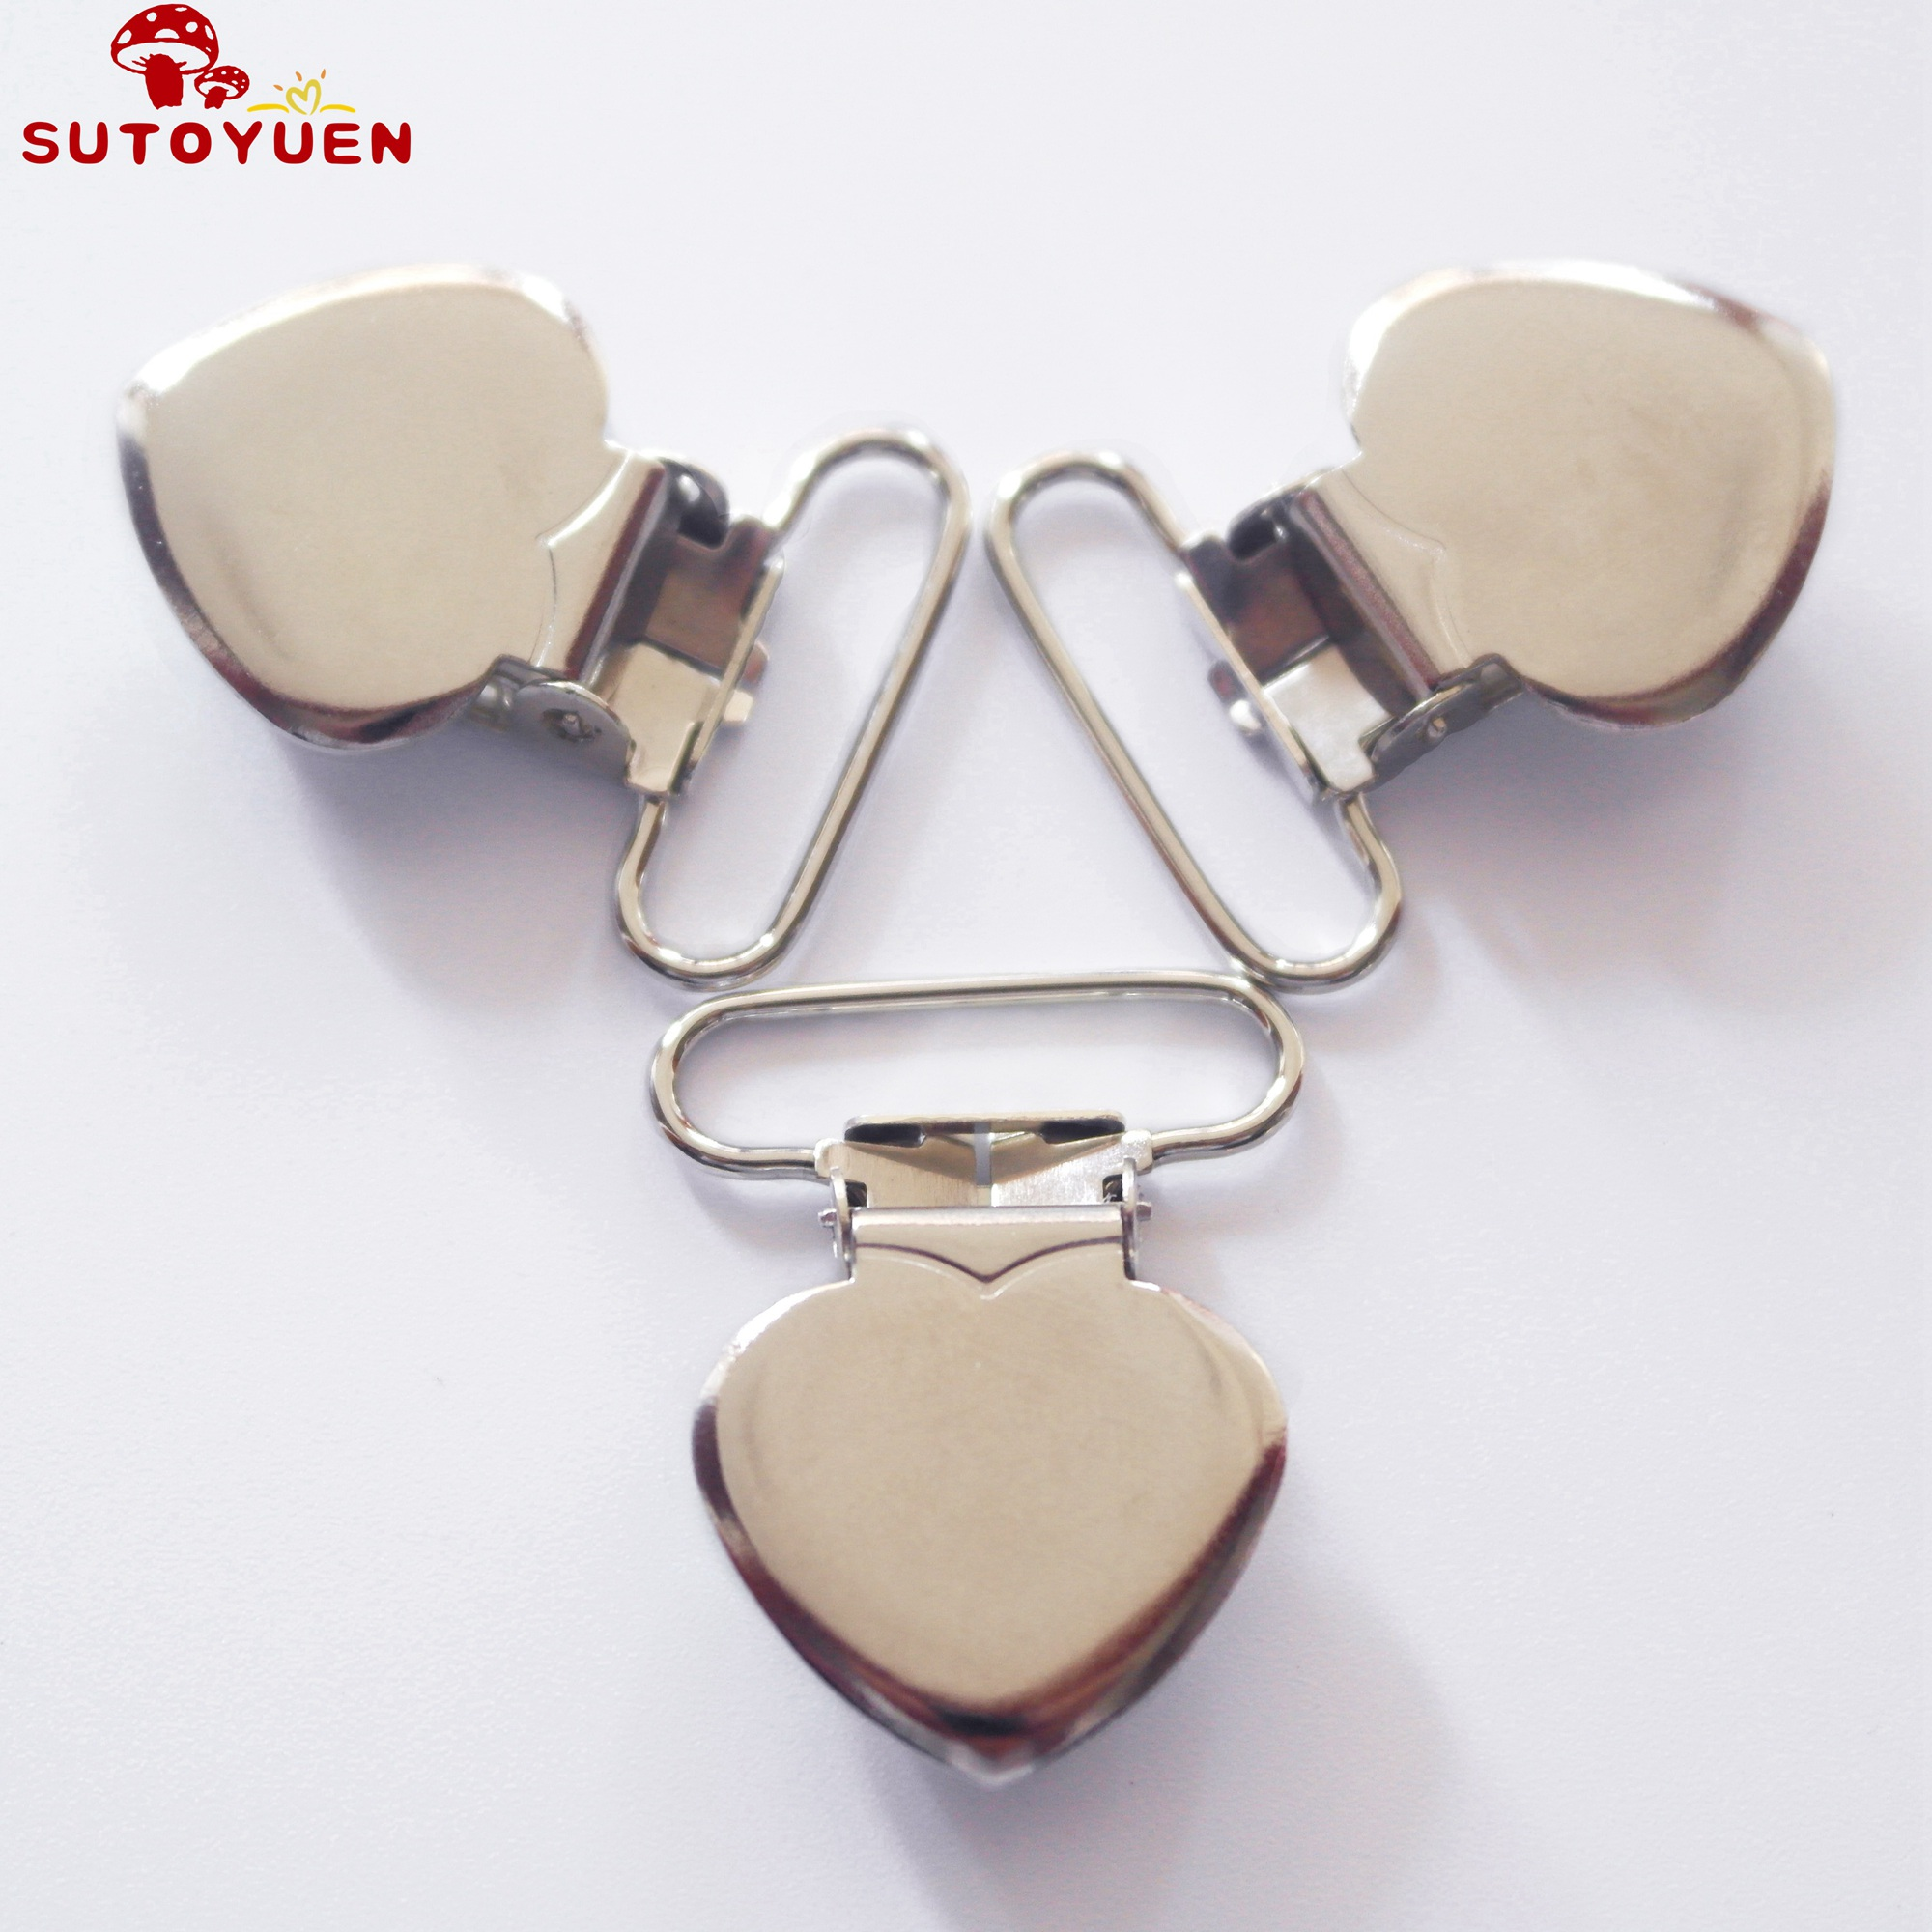 Free Shipping 100 pcs 1'' 25mm Silver Colored Heart Shaped Baby Pacifier Clips MAN  Dummy Clip Suspender Clip Rack Plating-in Pacifier from Mother & Kids    1